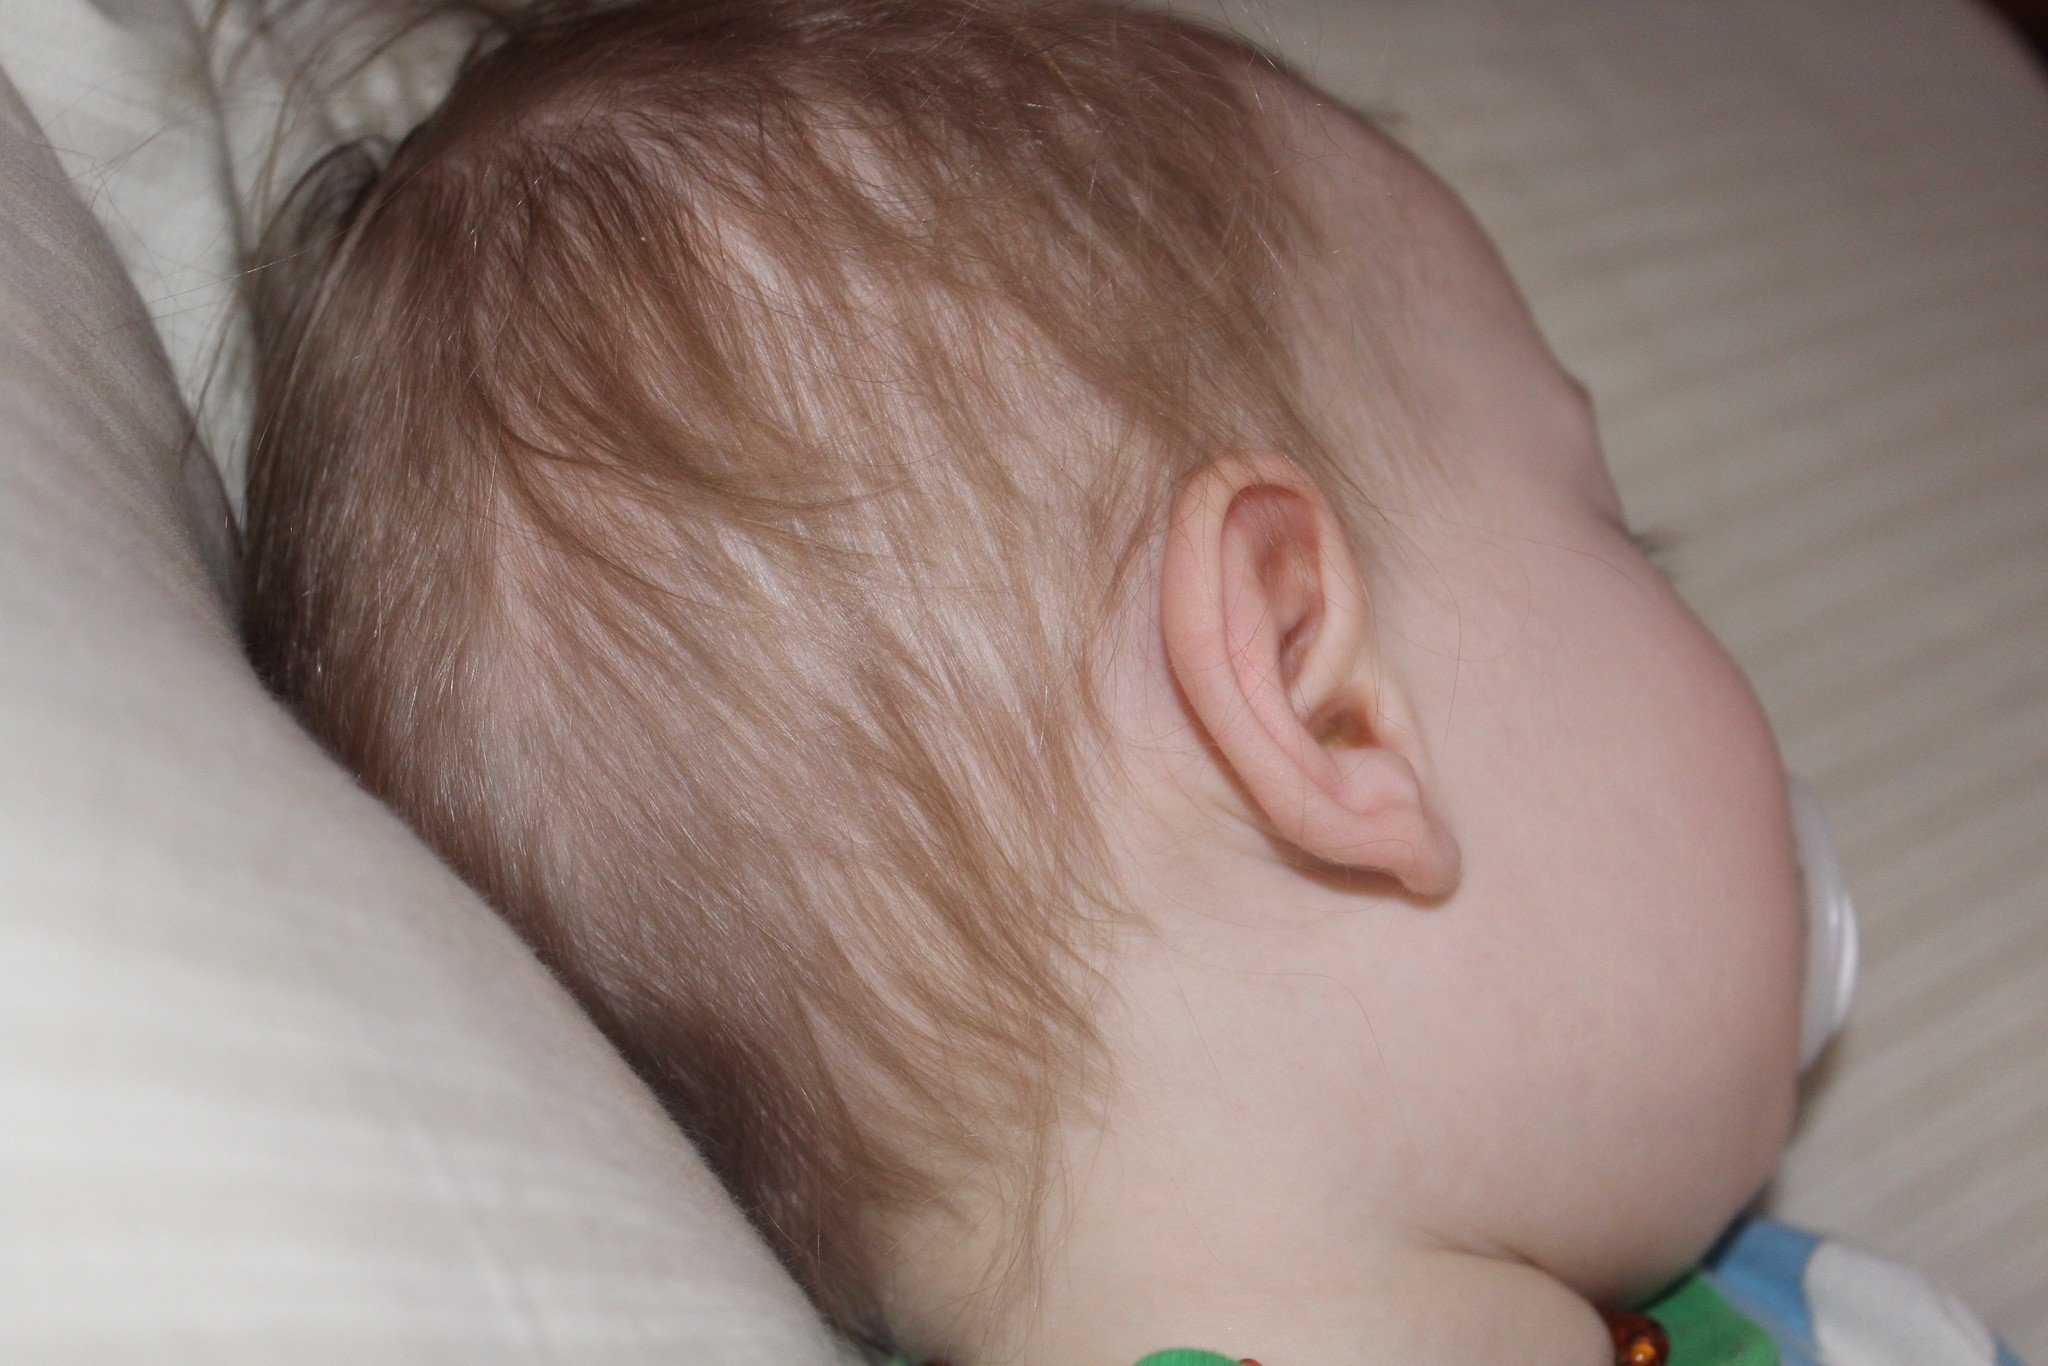 Ear infection remedies